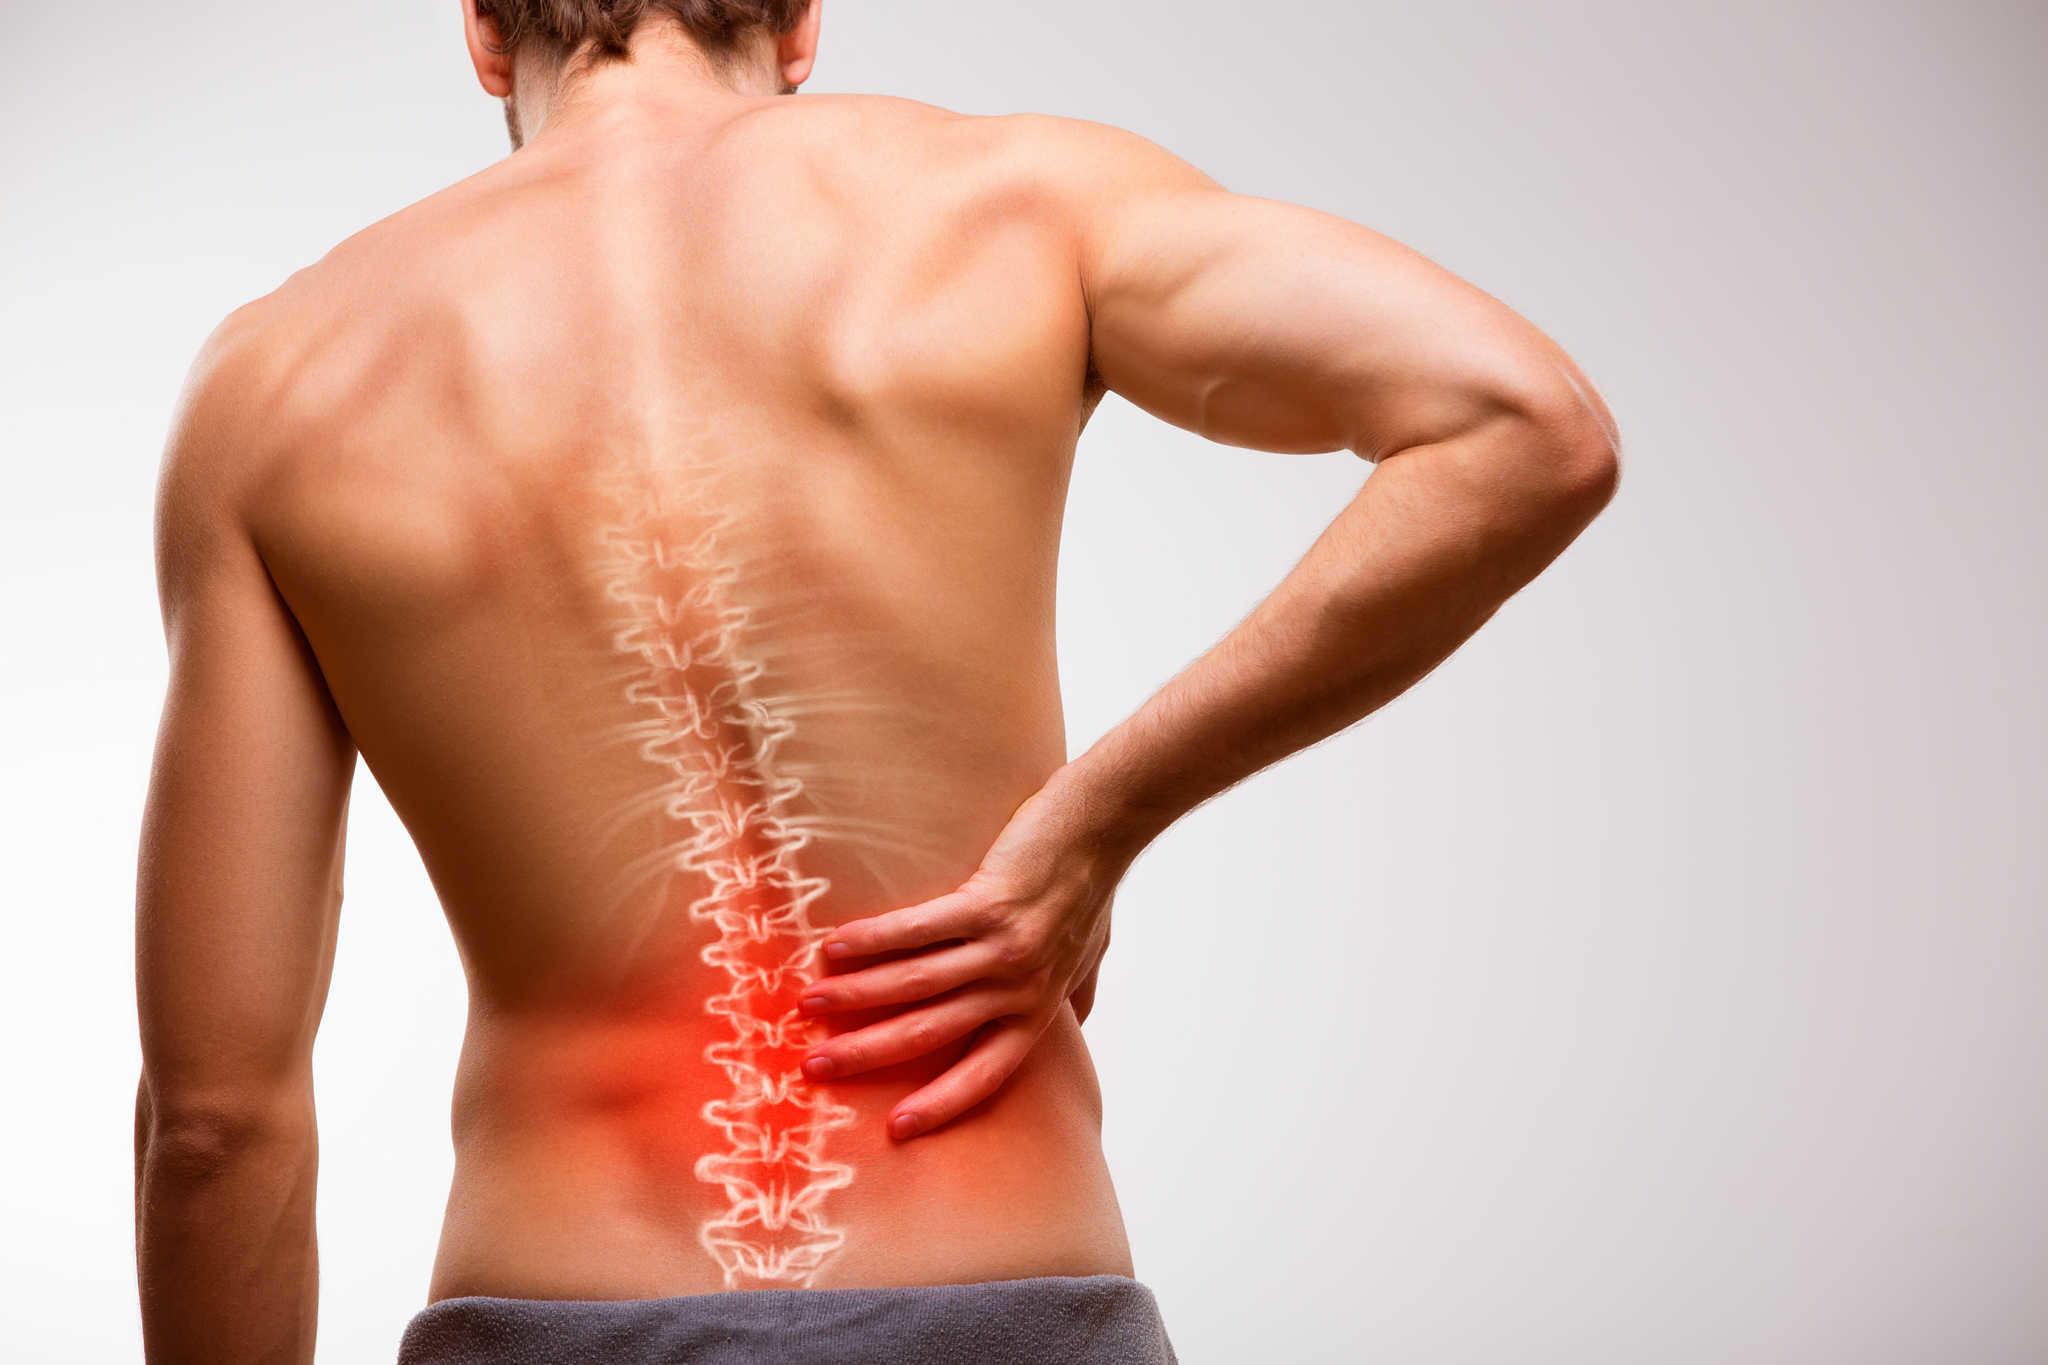 Lower back pain rehabilitation and treatment